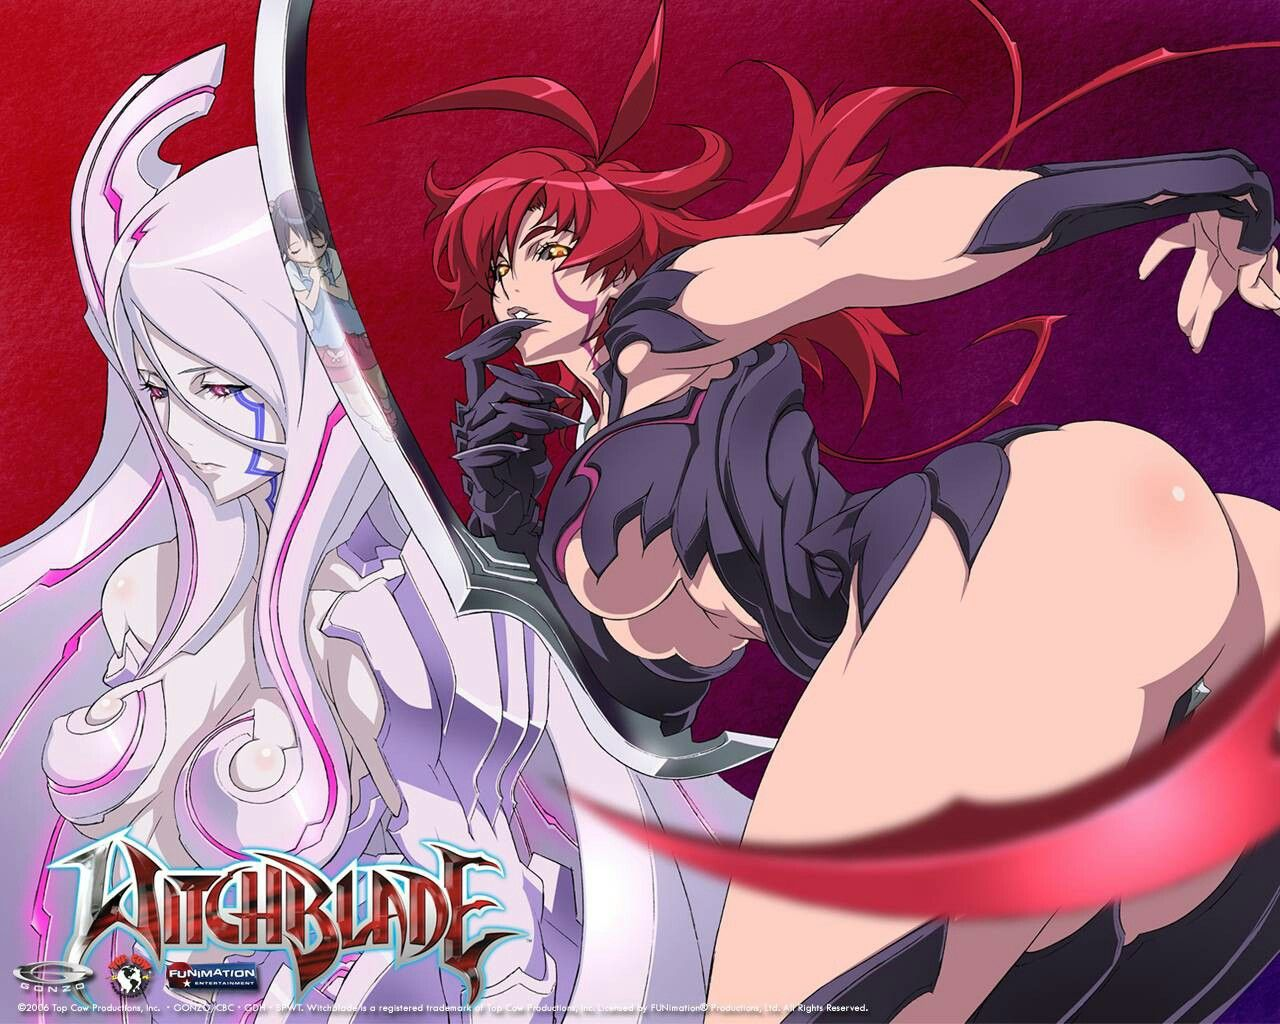 Pin By Anna Bell On Anime Witchblade Anime Anime Yandere